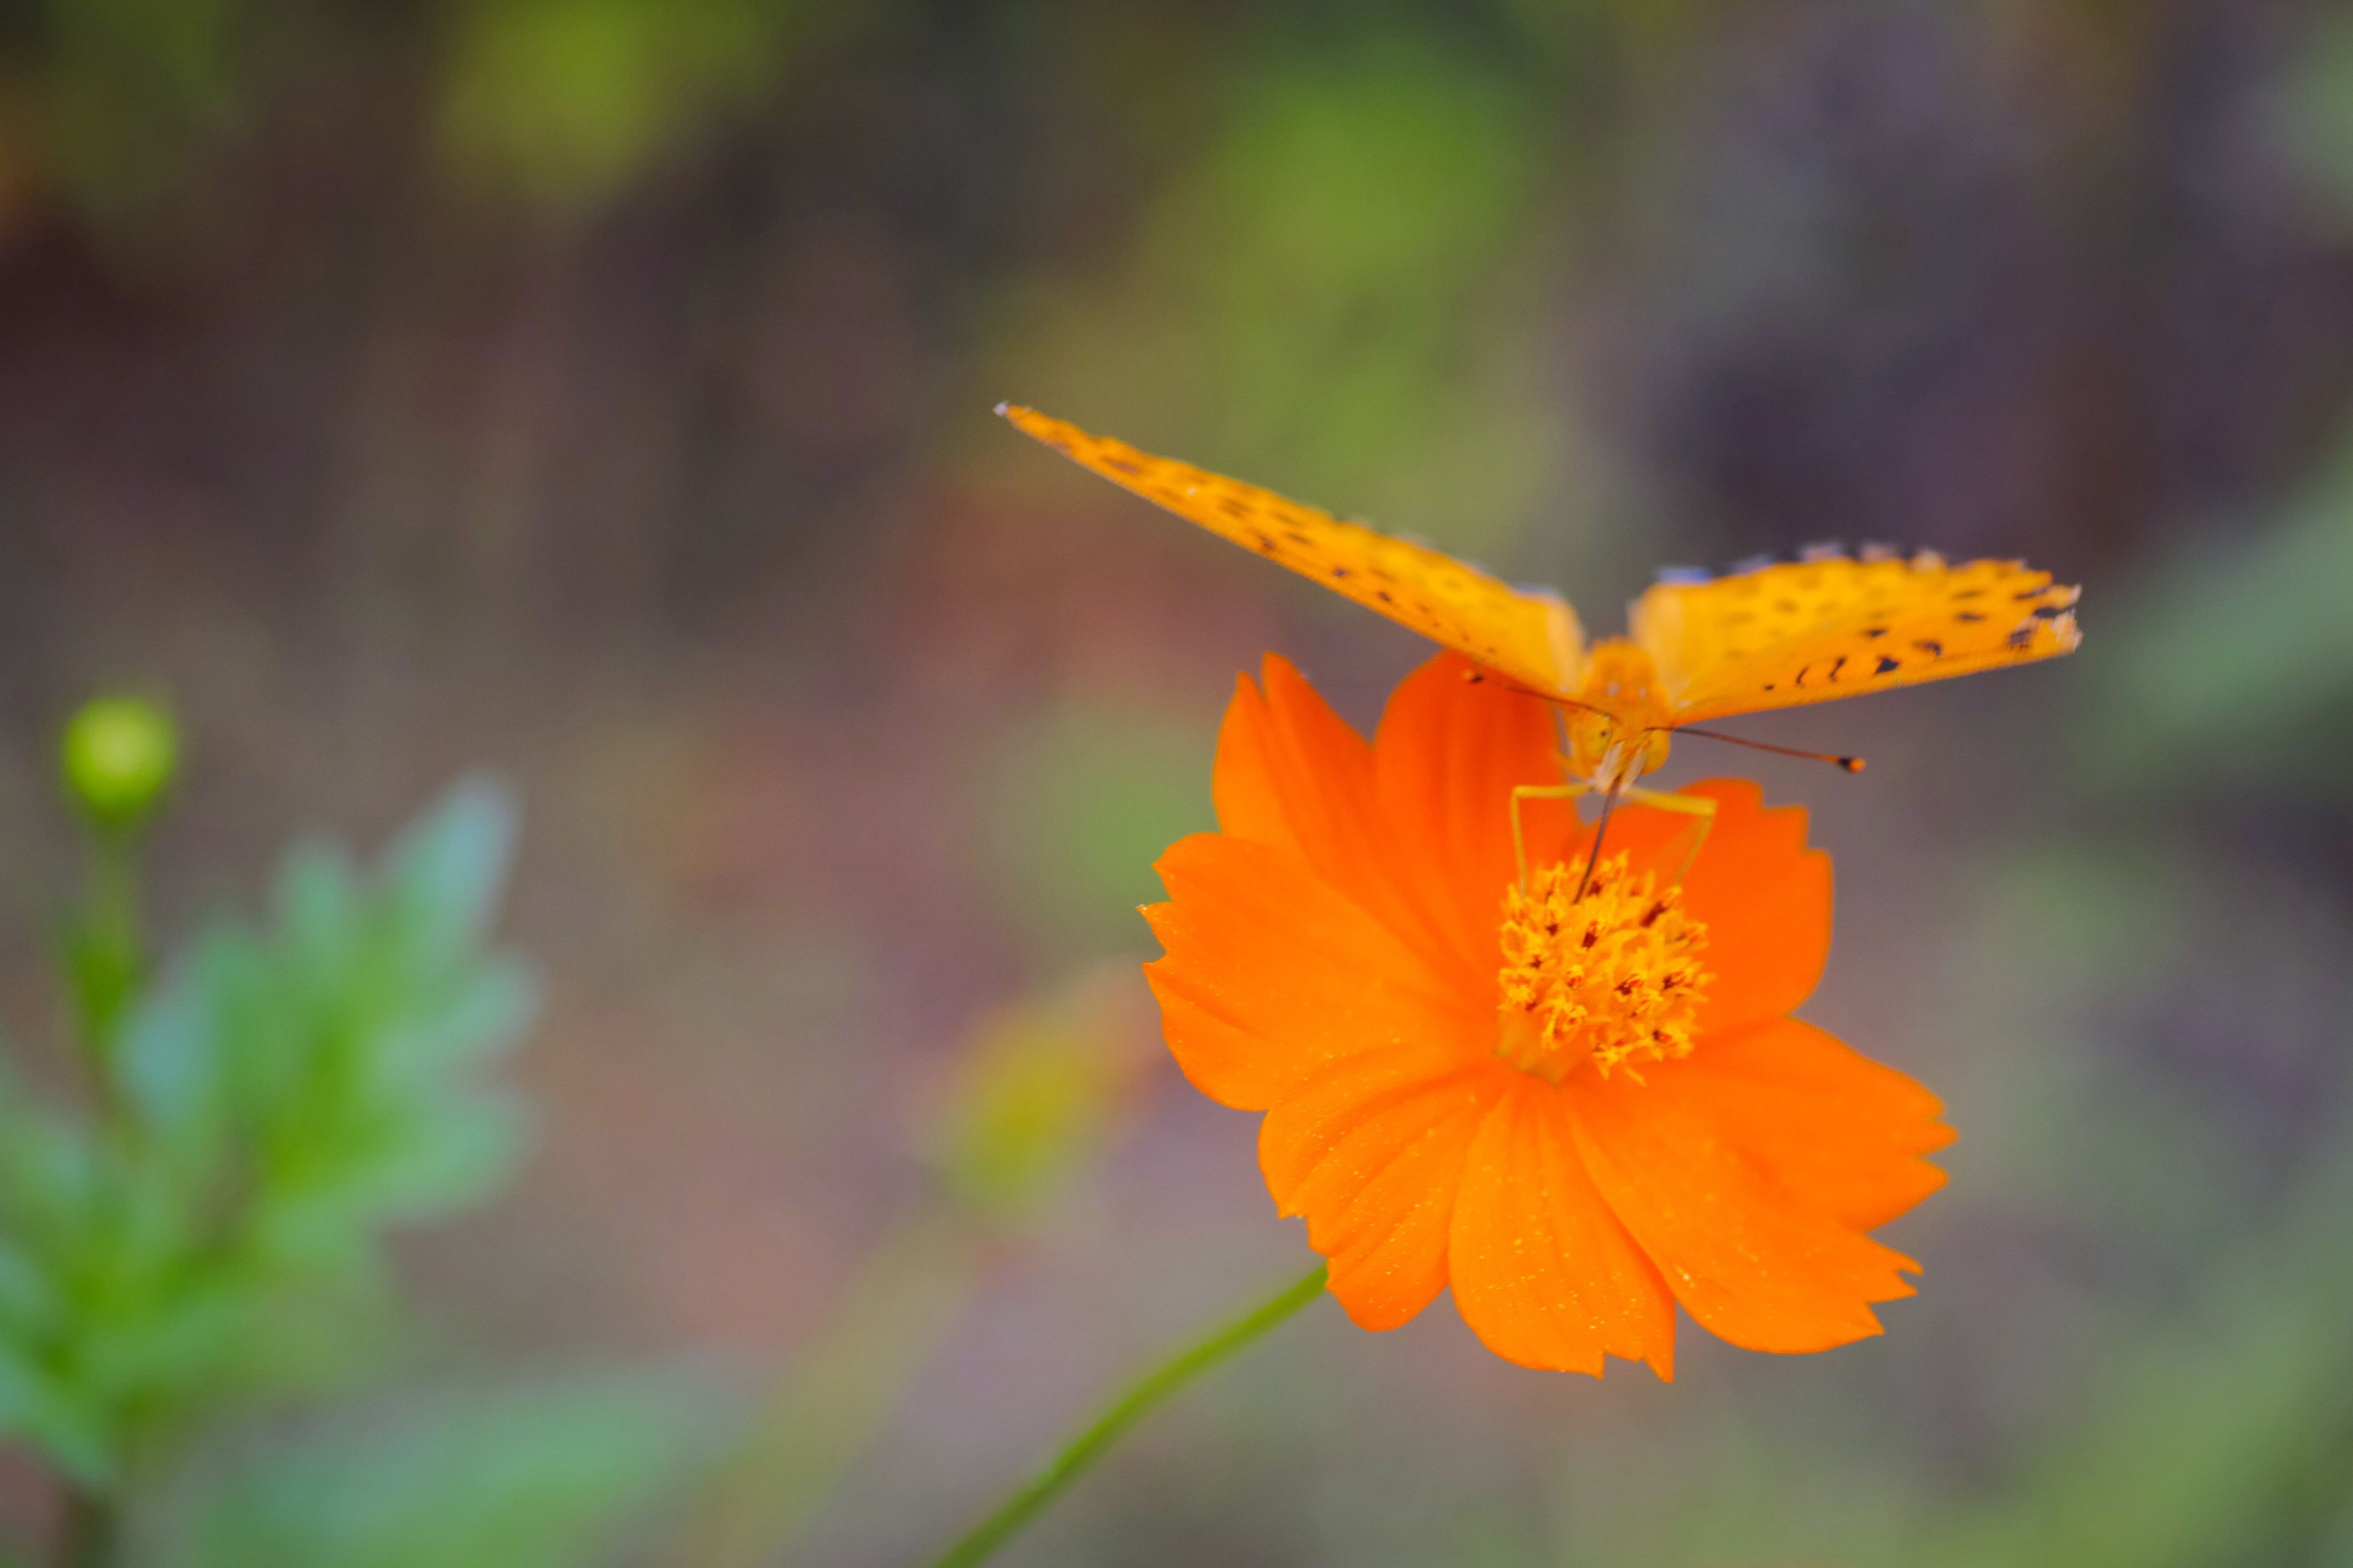 flower, petal, freshness, fragility, flower head, focus on foreground, growth, beauty in nature, close-up, yellow, blooming, nature, plant, pollen, in bloom, single flower, selective focus, stamen, orange color, blossom